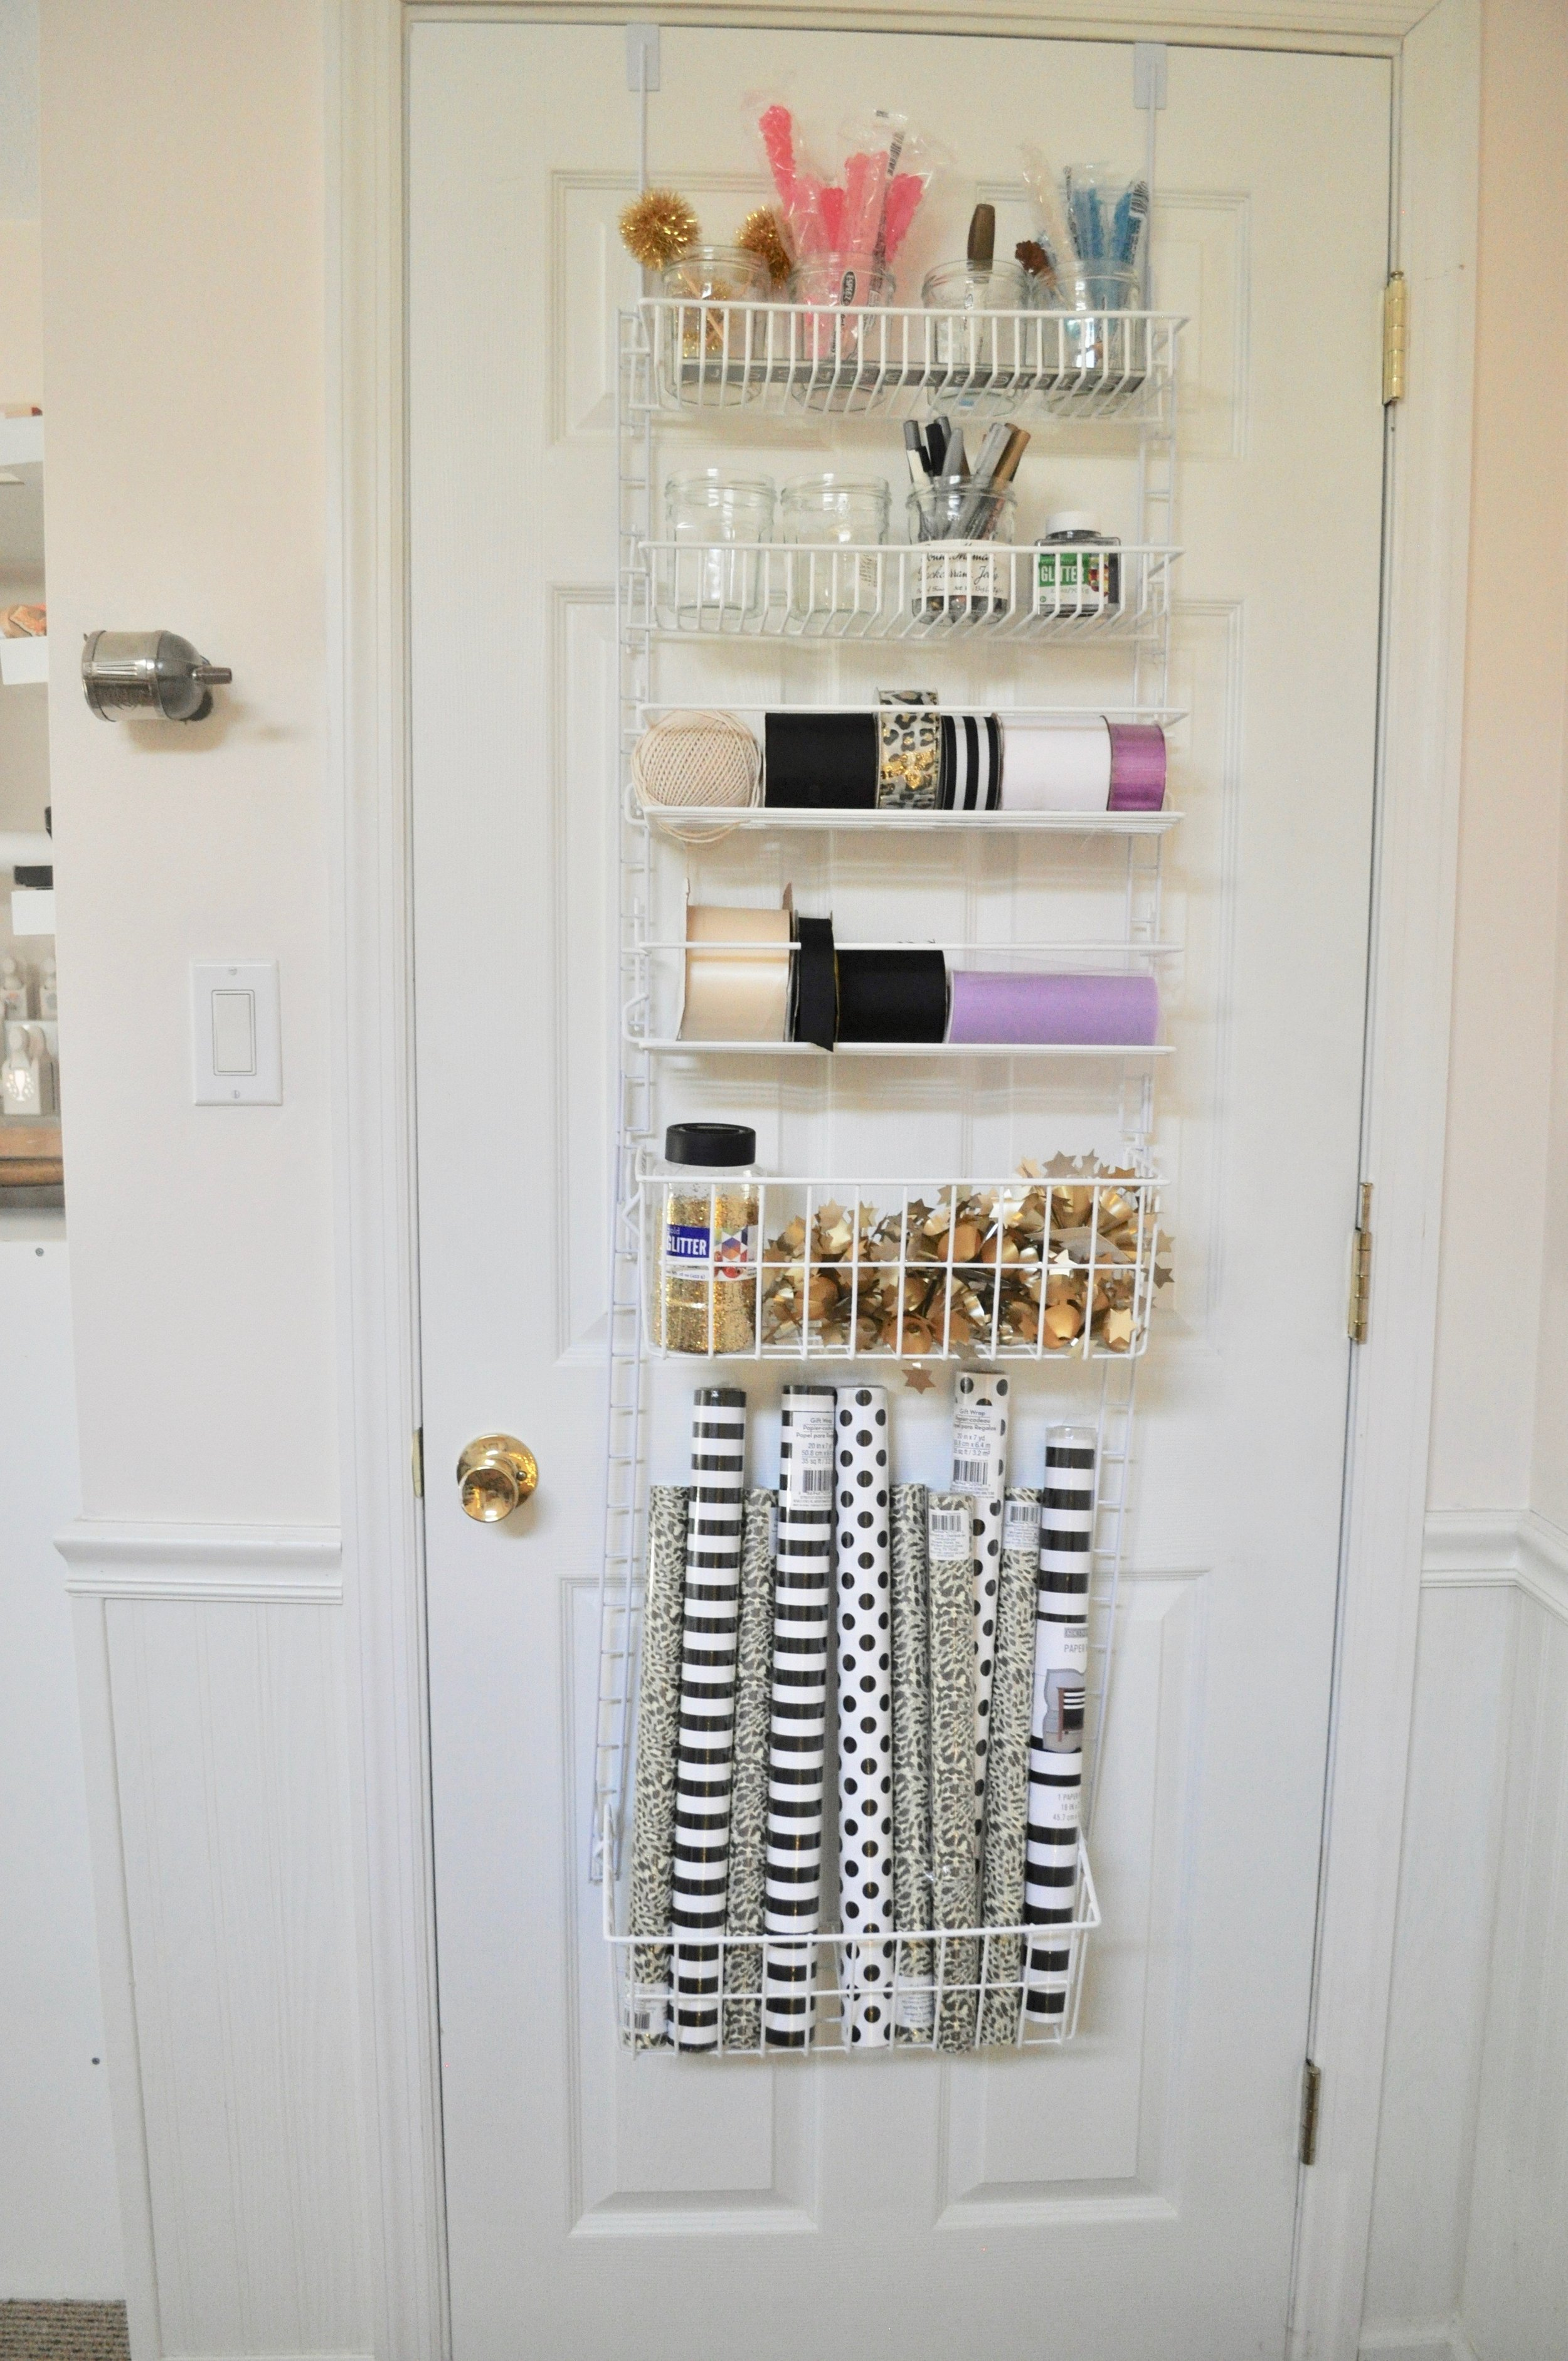 A great solution for small spaces, or for squeezing out storage from every square foot of your space